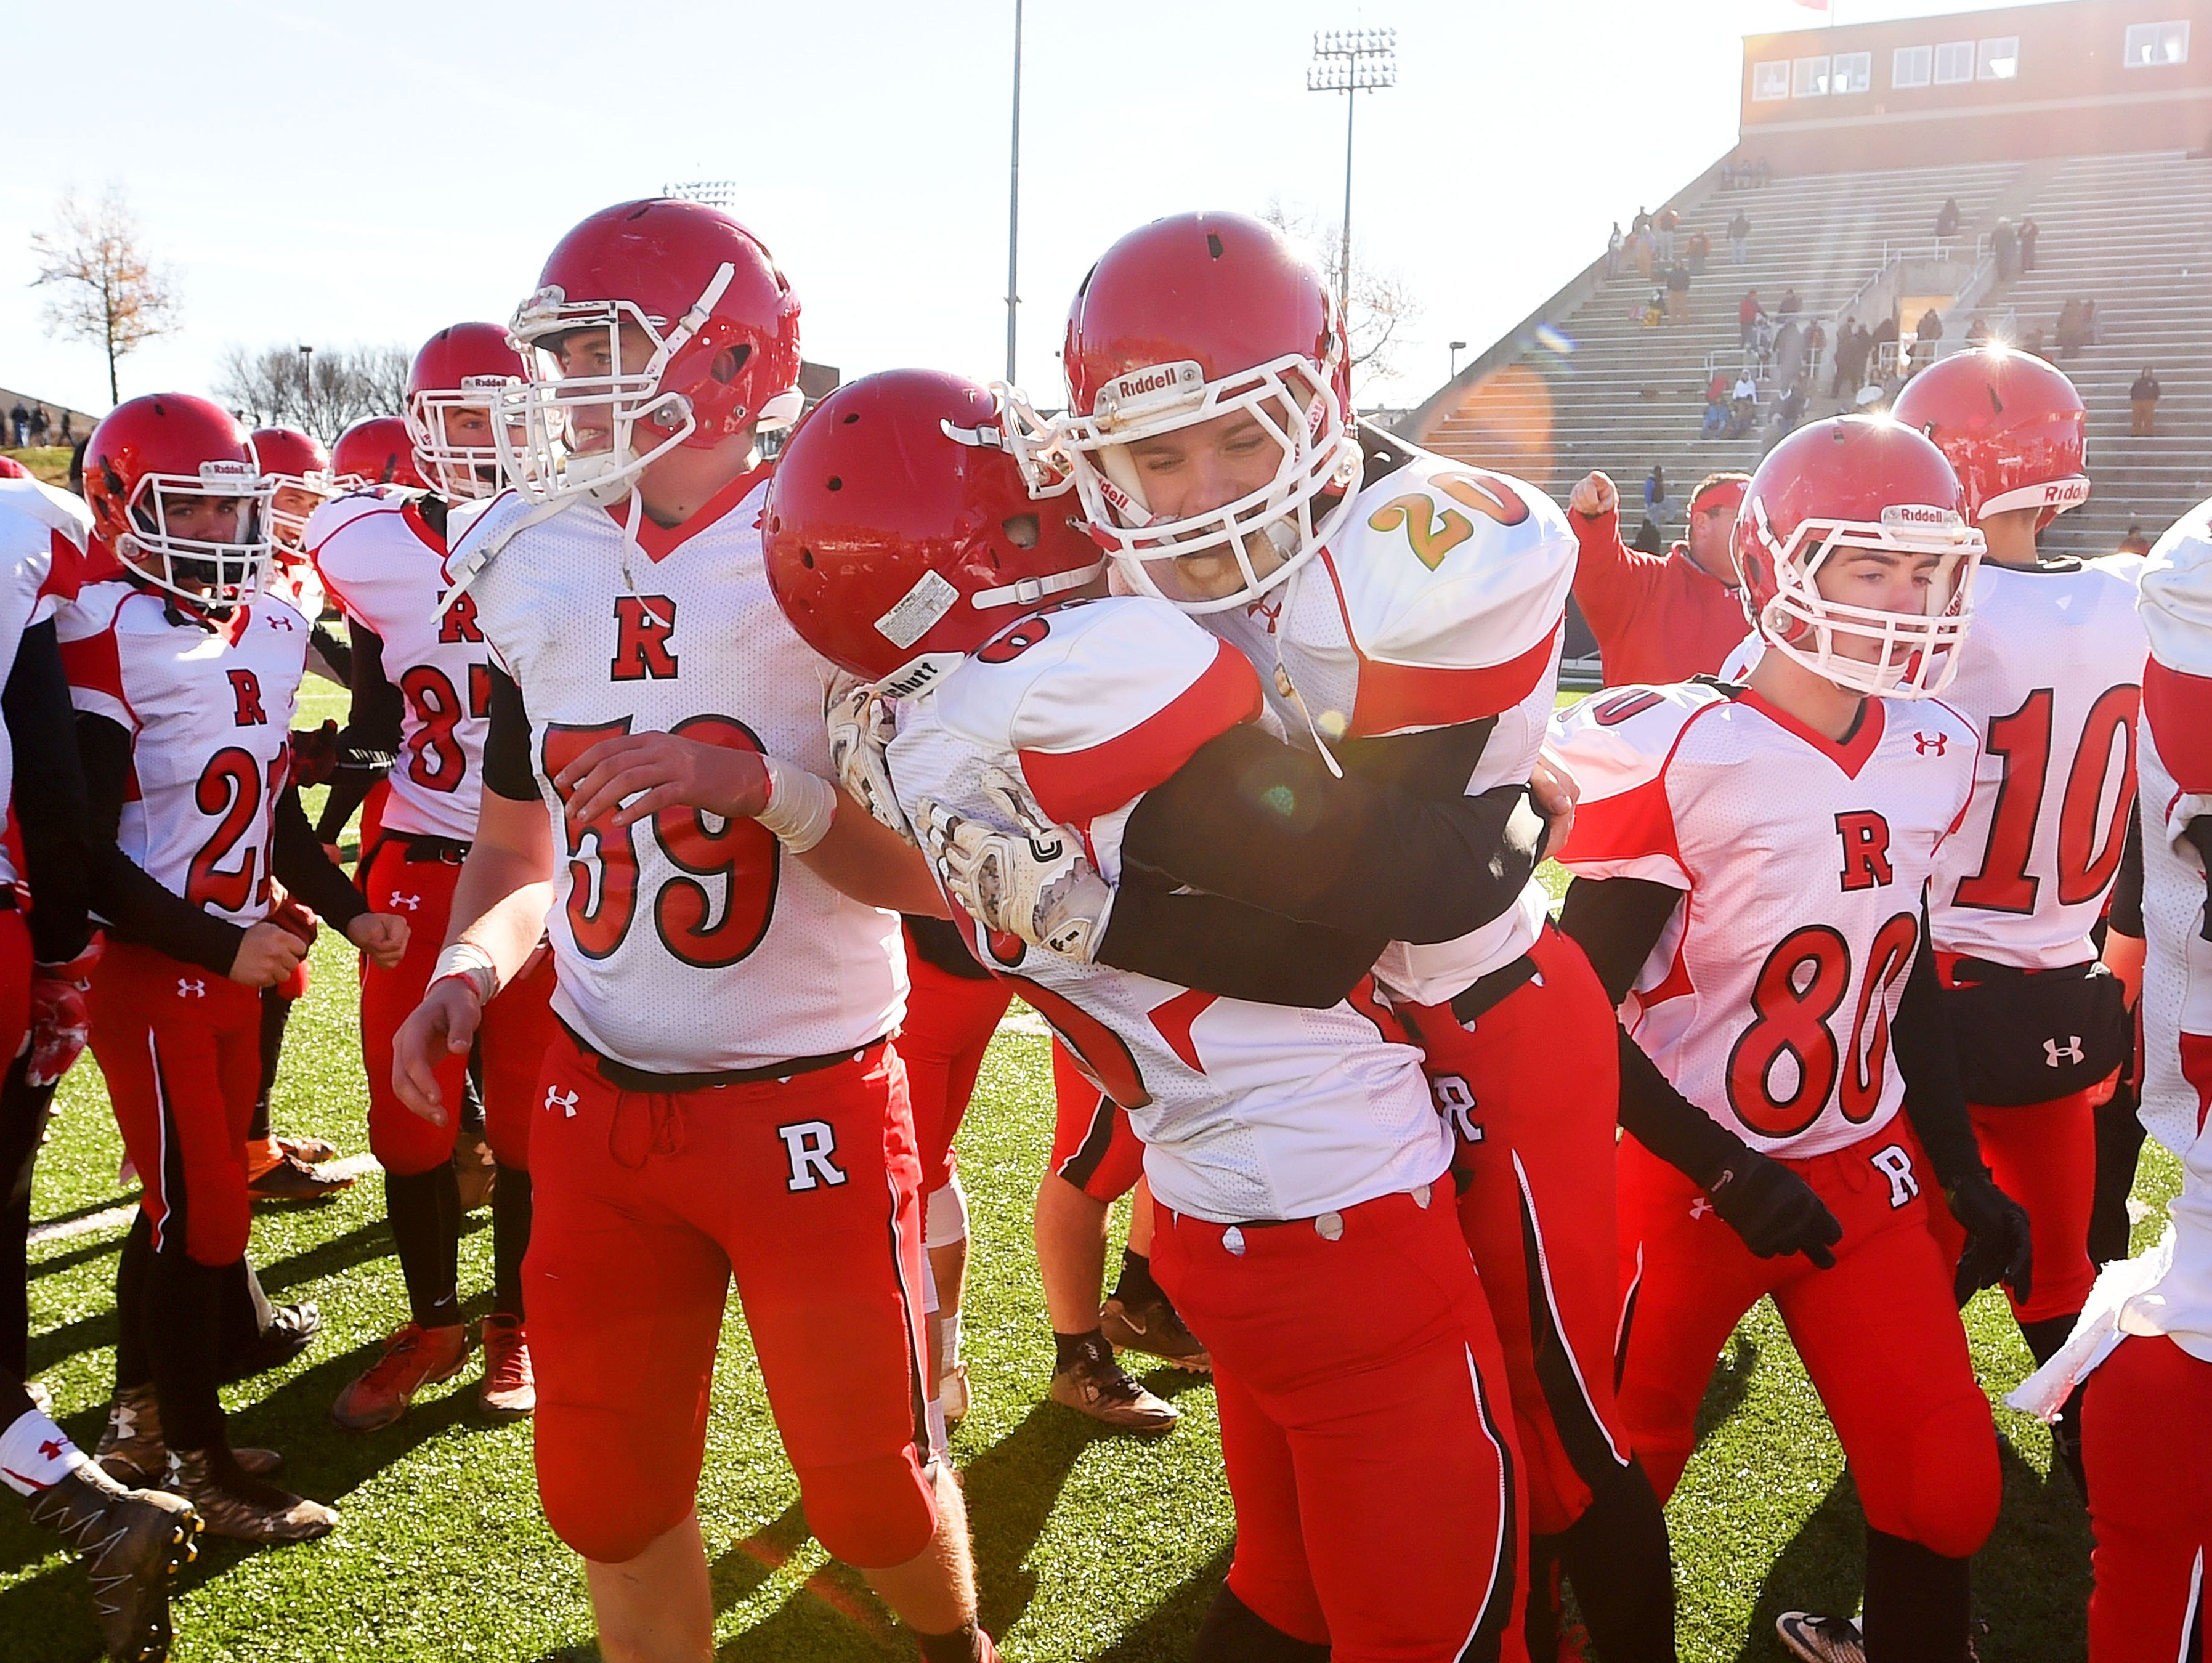 Riverheads' players celebrates their win over Sussex Central to win the Group 1A state championship football game played in Salem on Saturday, Dec. 10, 2016. Riverheads won the game, 49-6.